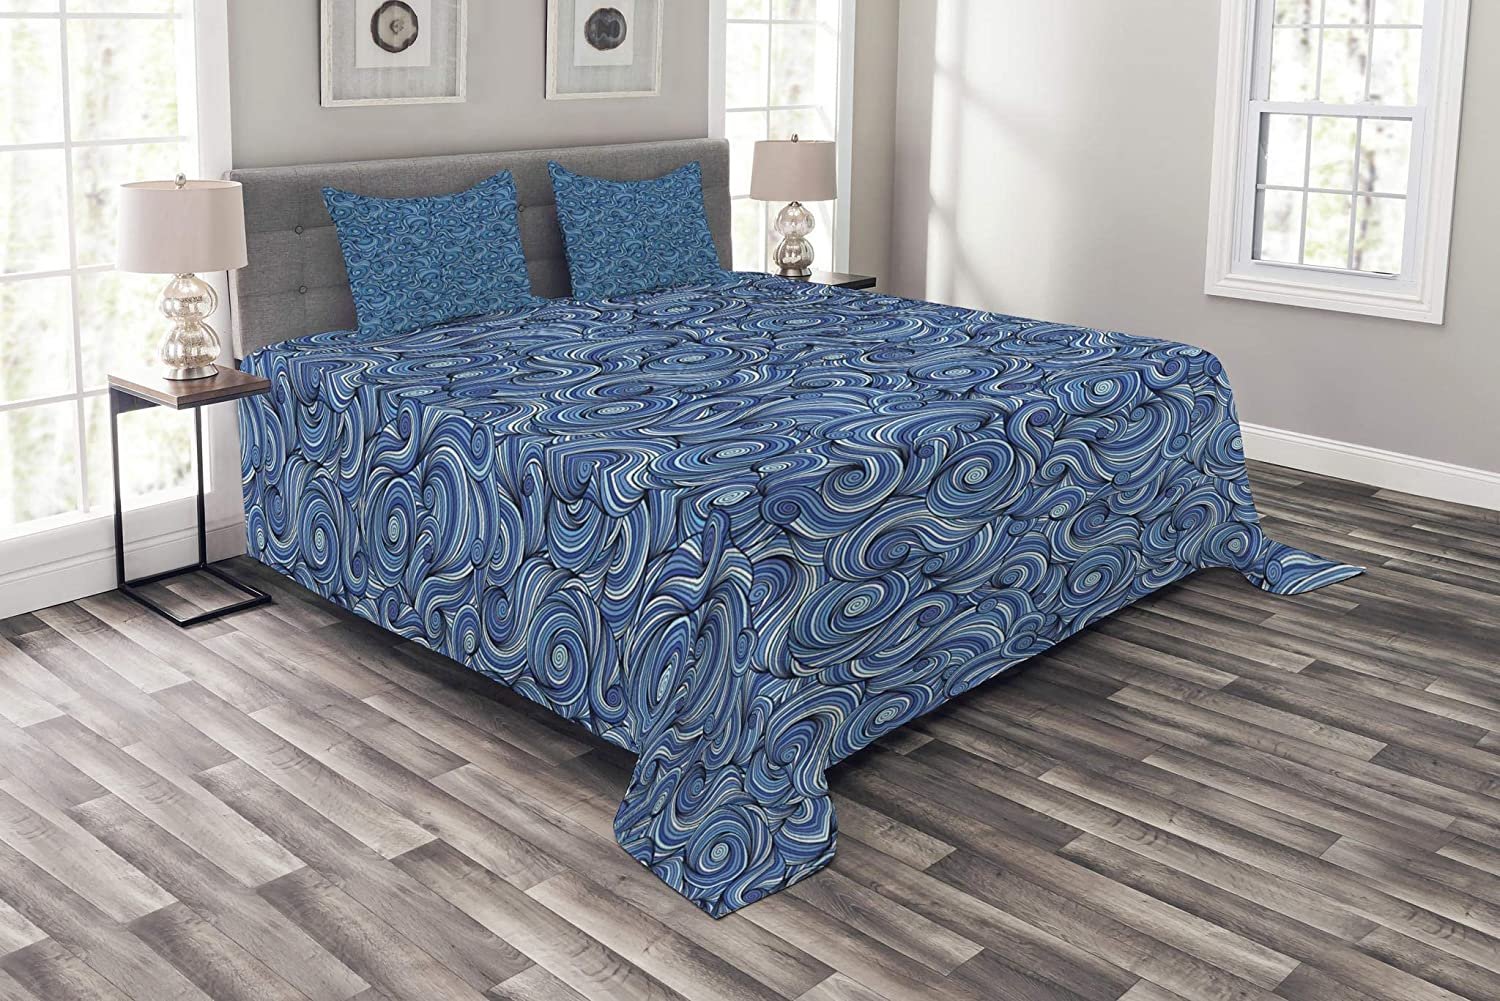 Ambesonne Asian Bedspread, Zentangle Style Circles Swirling Lines Ornate Exotic Tribal, Decorative Quilted 3 Piece Coverlet Set with 2 Pillow Shams, Queen Size, Dark Blue